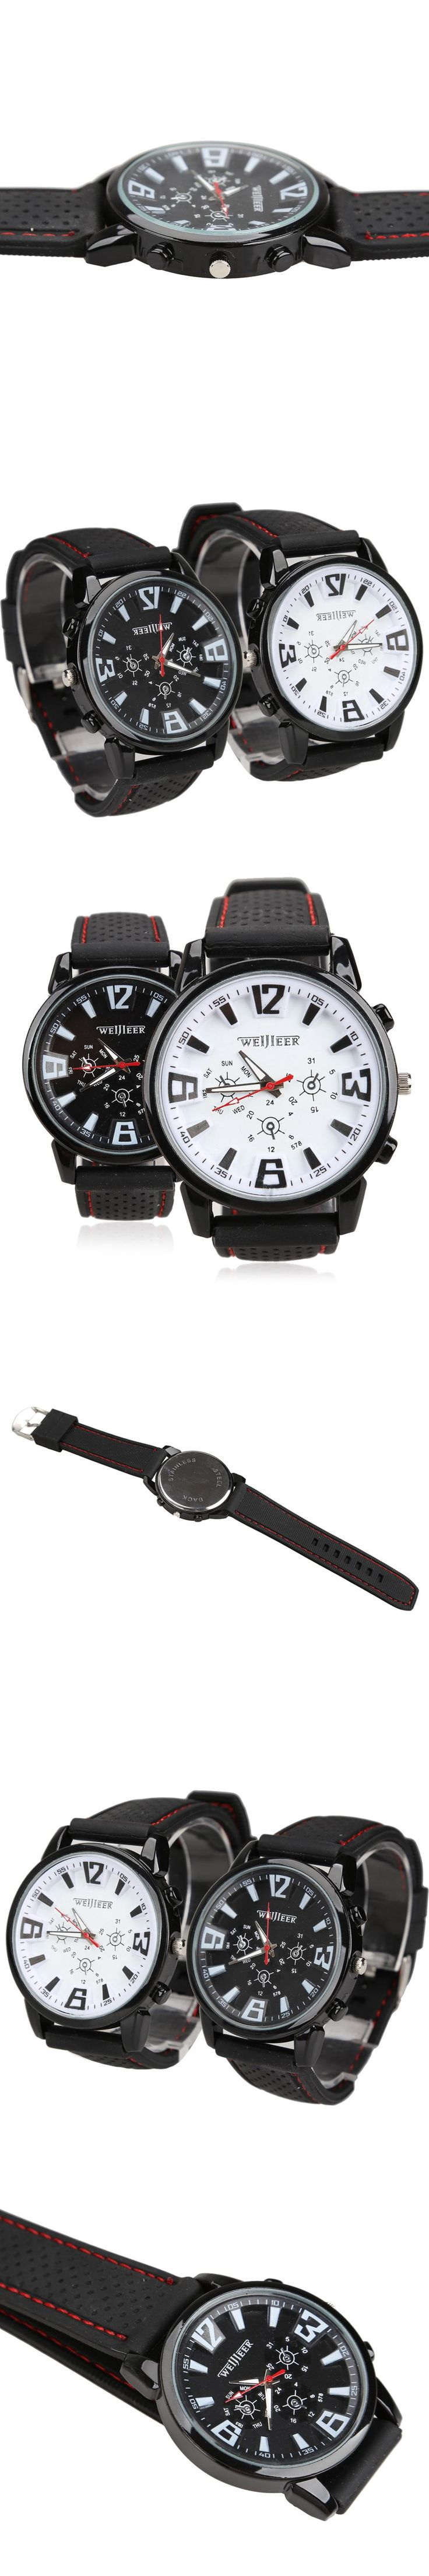 sandi auto pin race higgins pinterest modlite watches racing by cars on